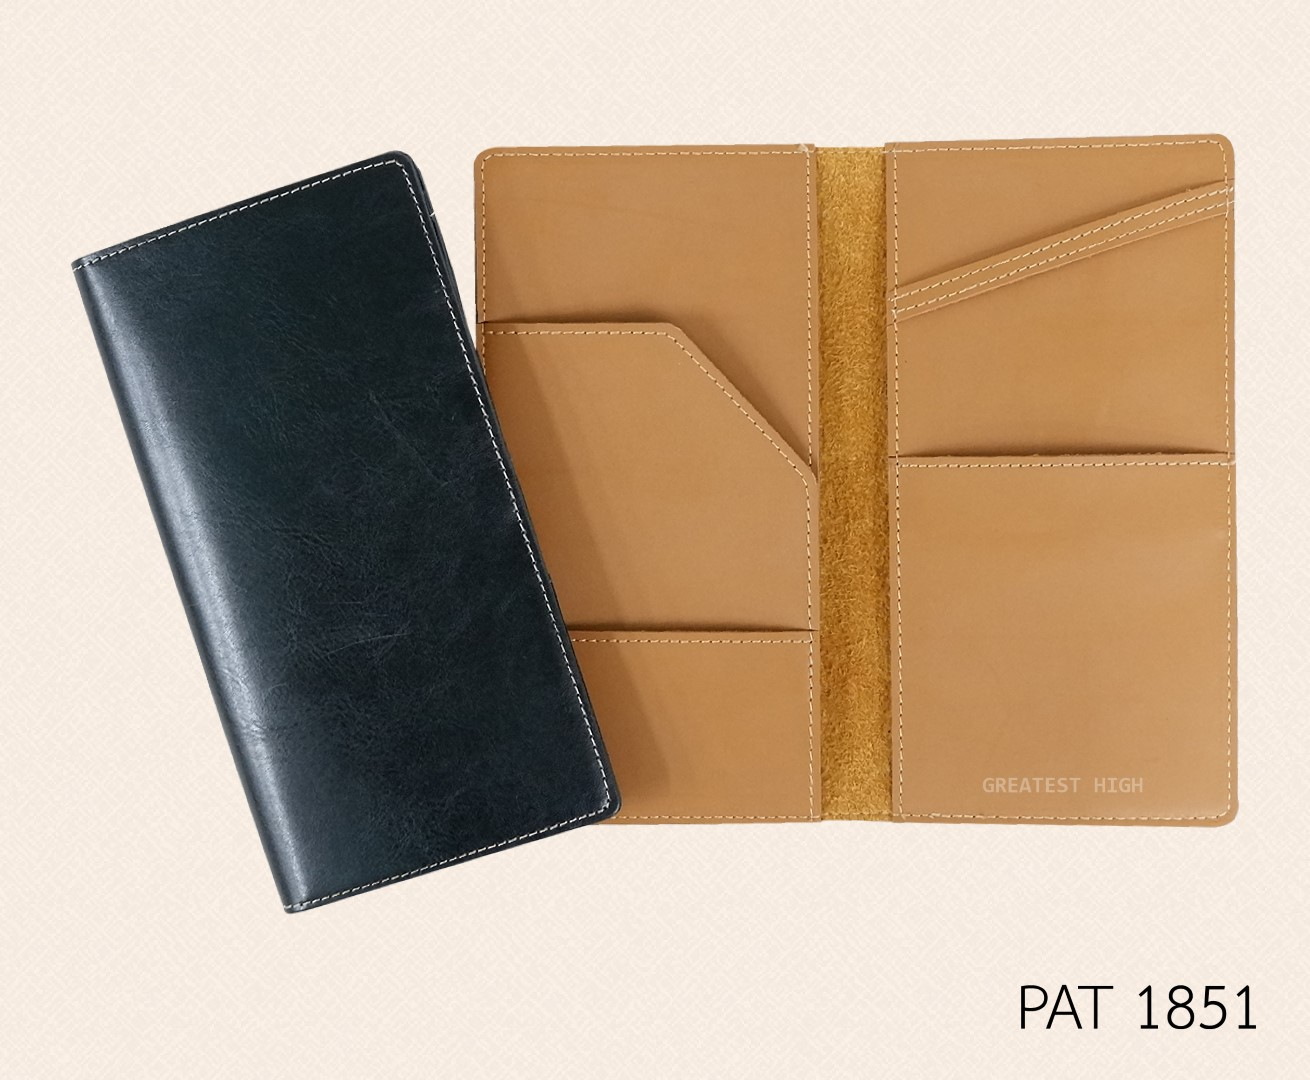 Air ticket and Passport holder :  PAT 1851